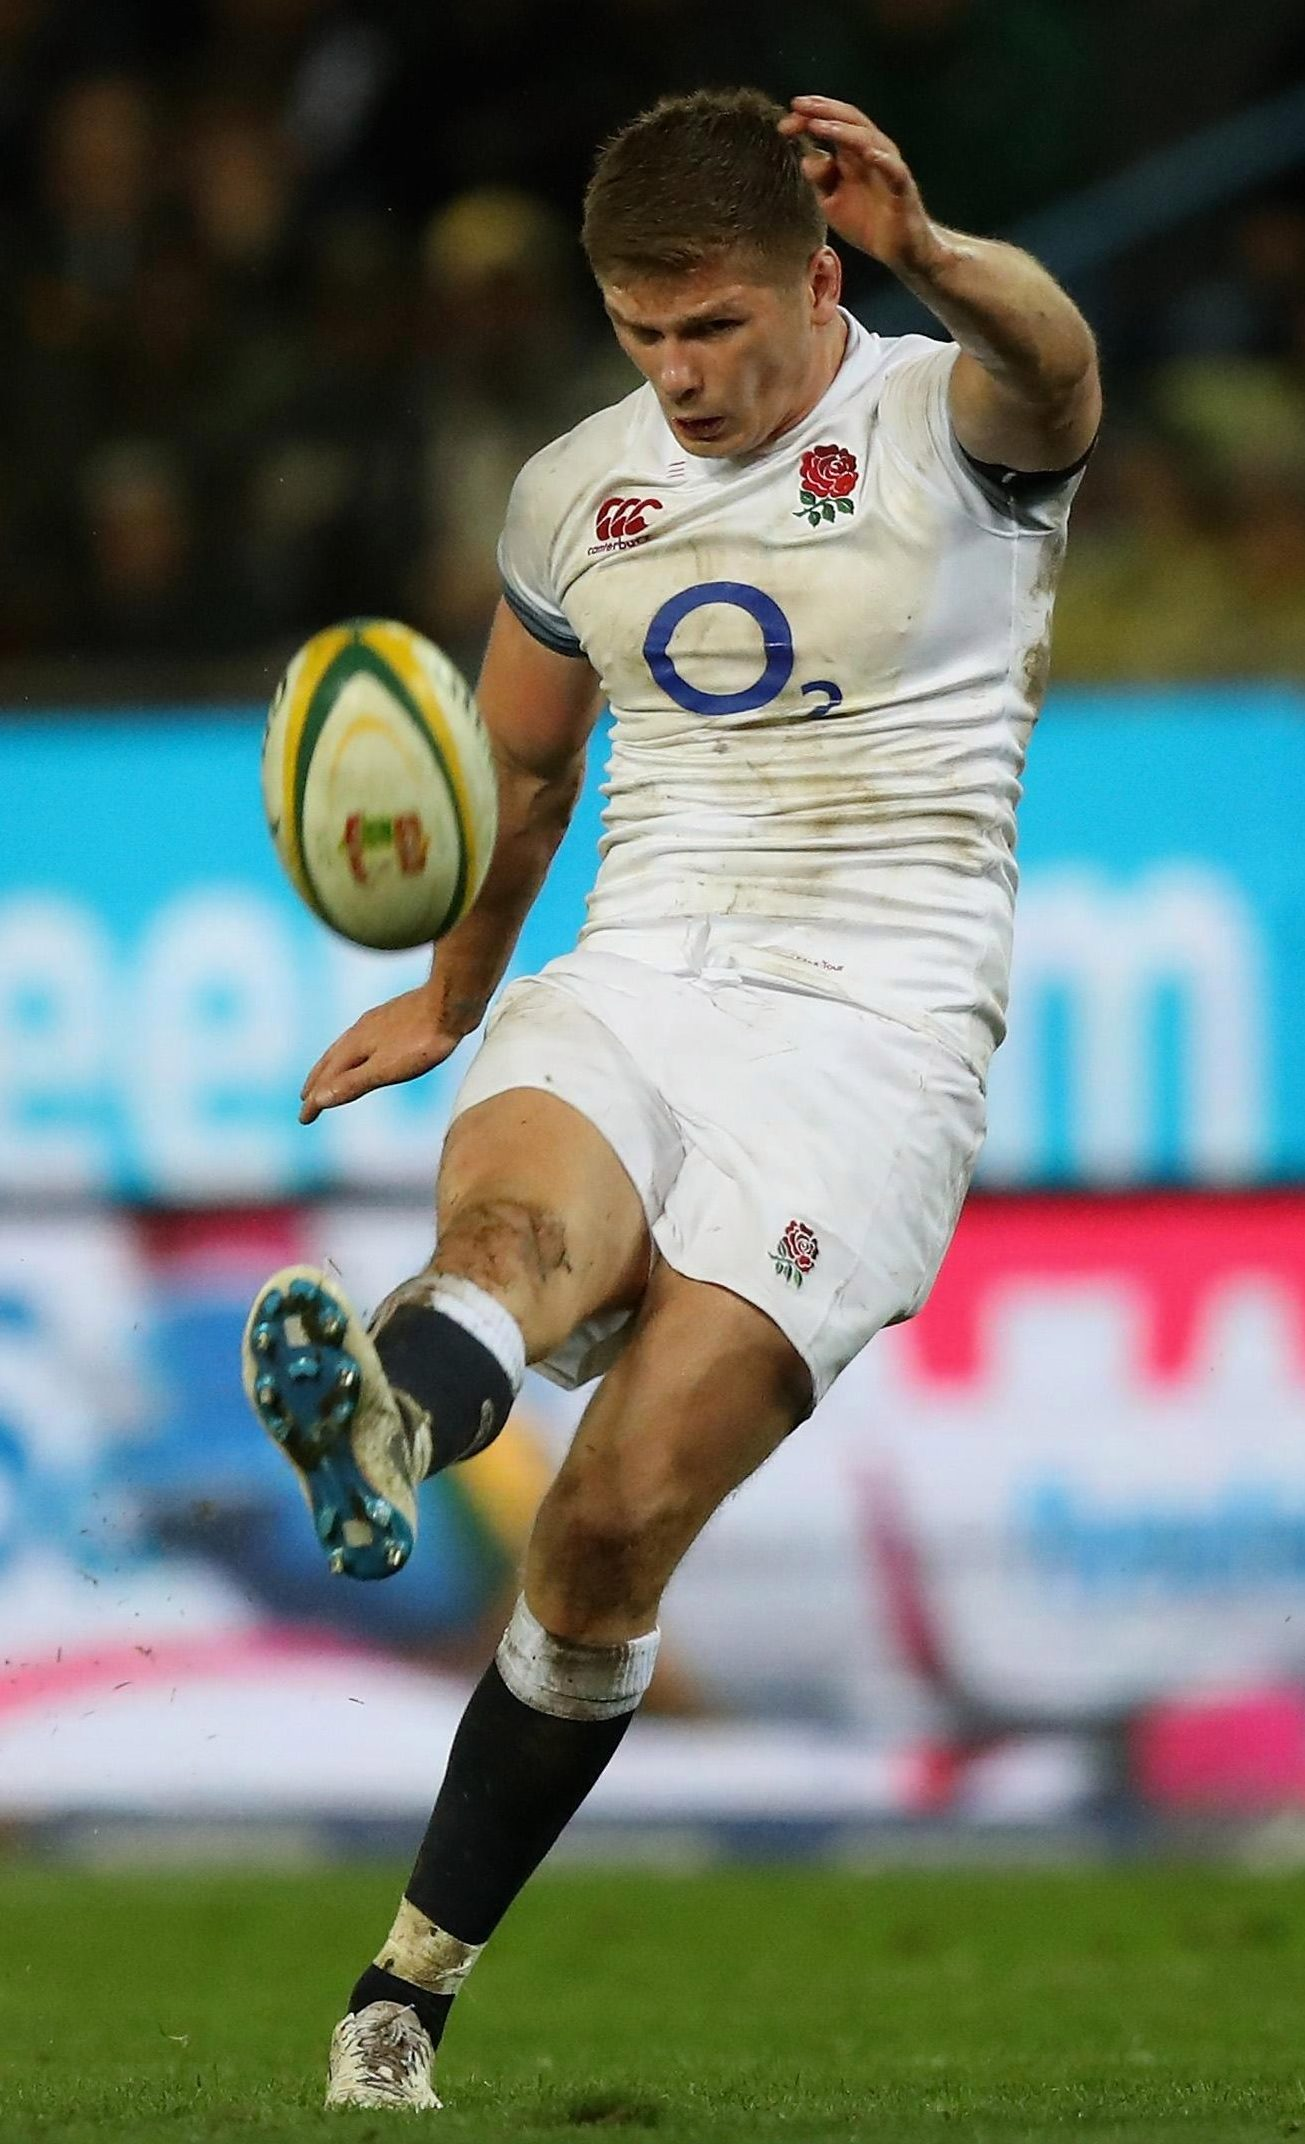 Owen Farrell lead England in South Africa this summer after lifting the Premiership with Saracens